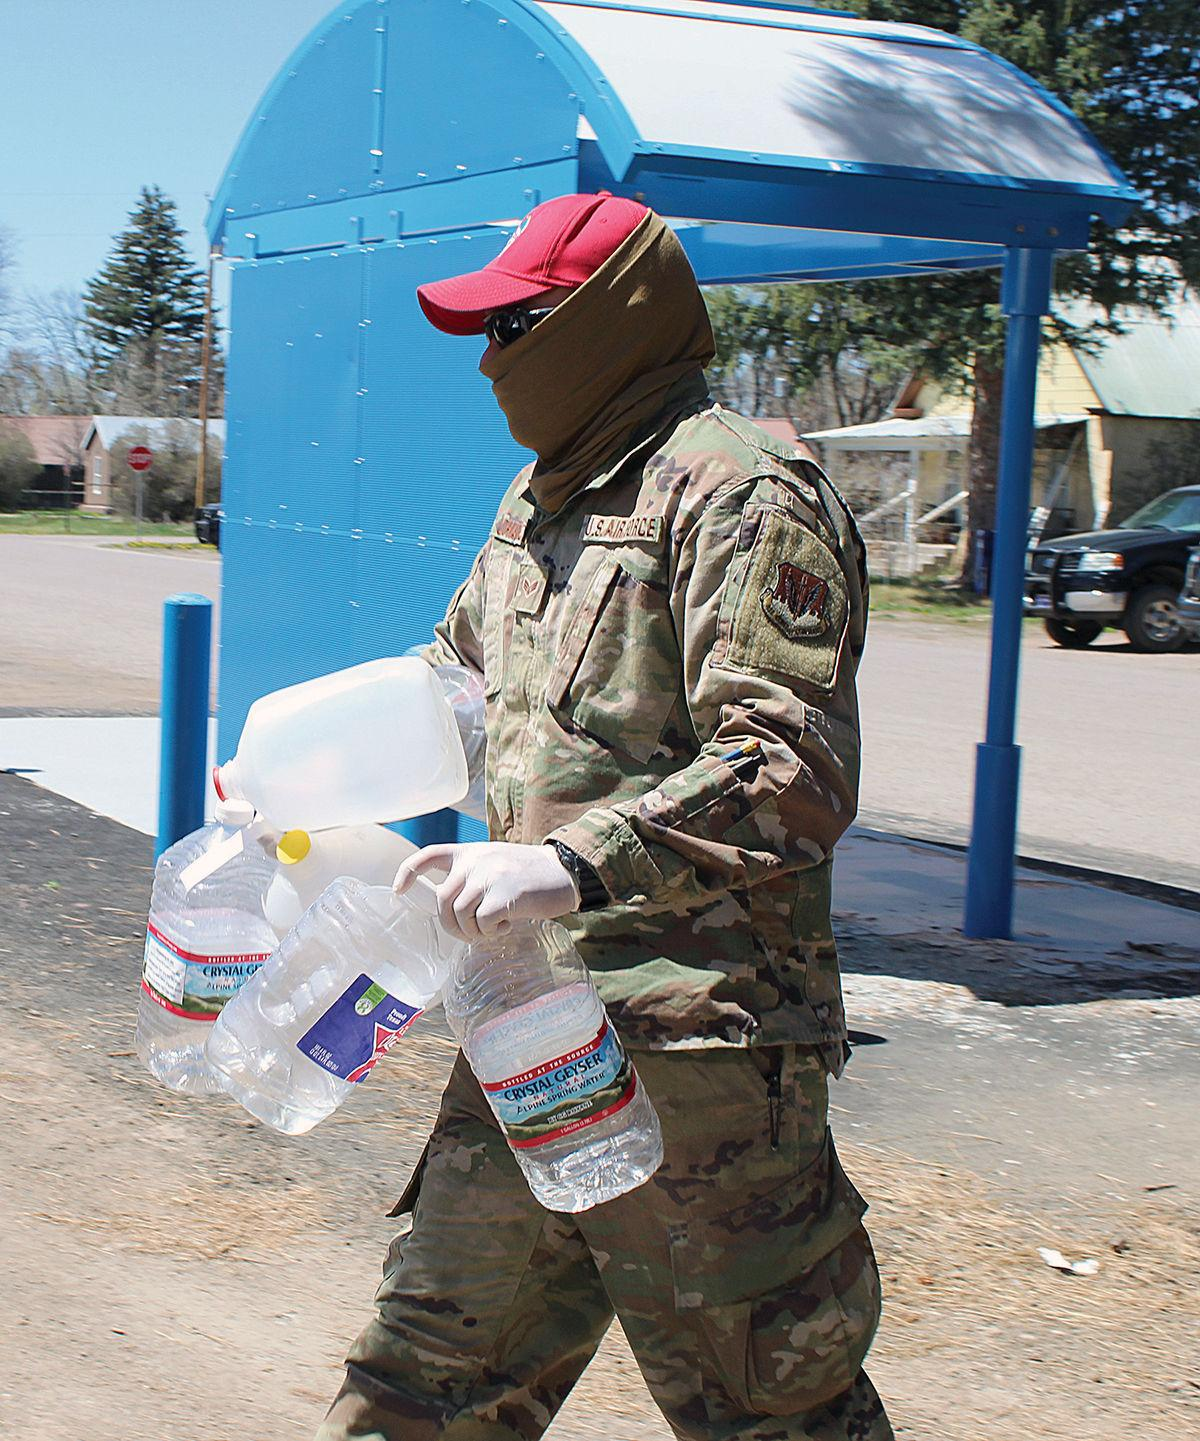 National Guard delivers water to Chama vert